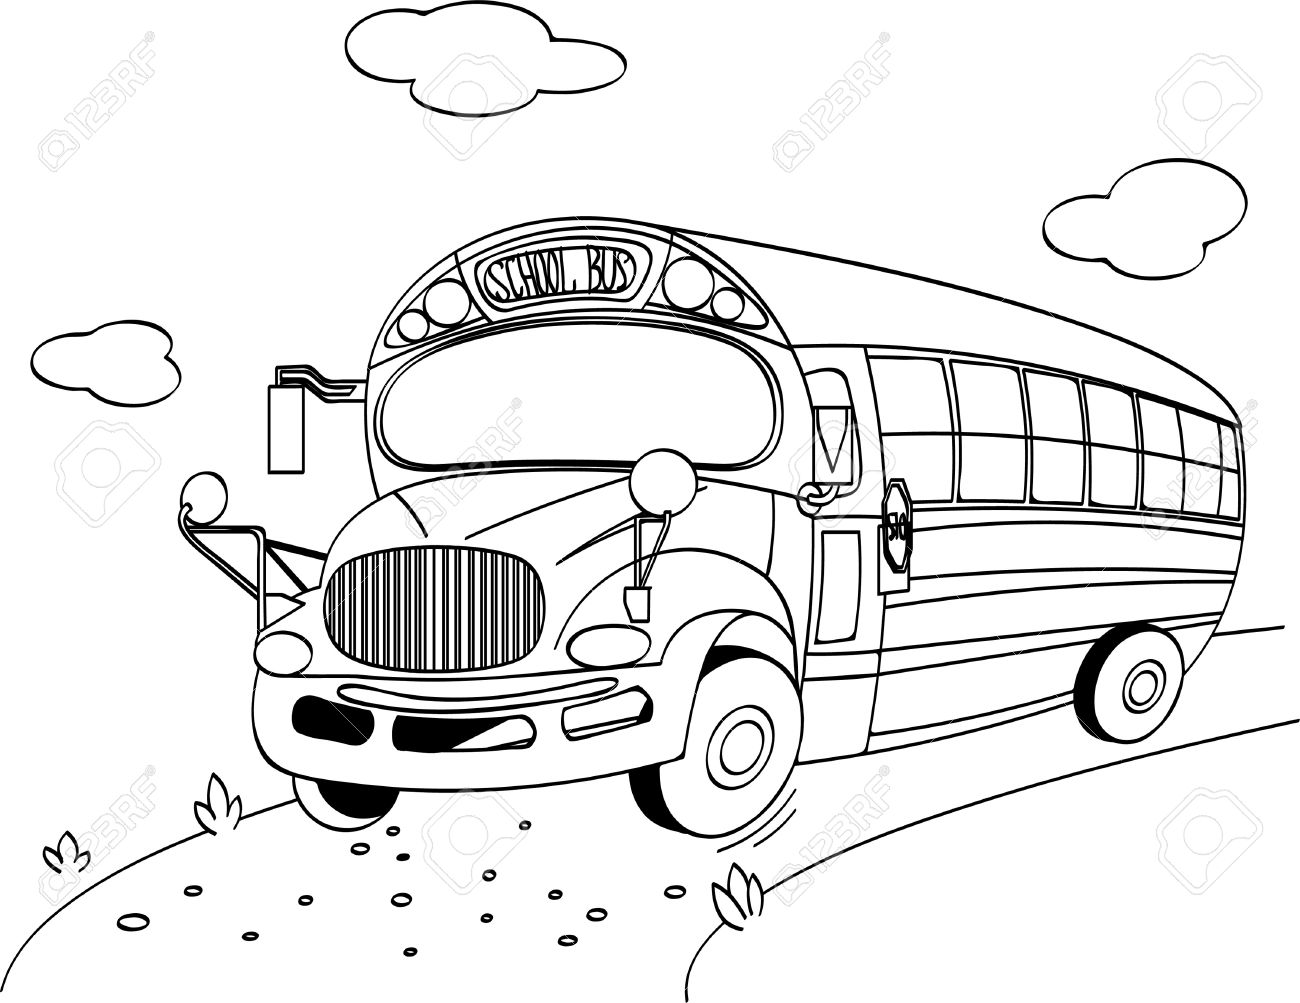 school bus drawing patent us20120268599 video monitoring system for a school drawing bus